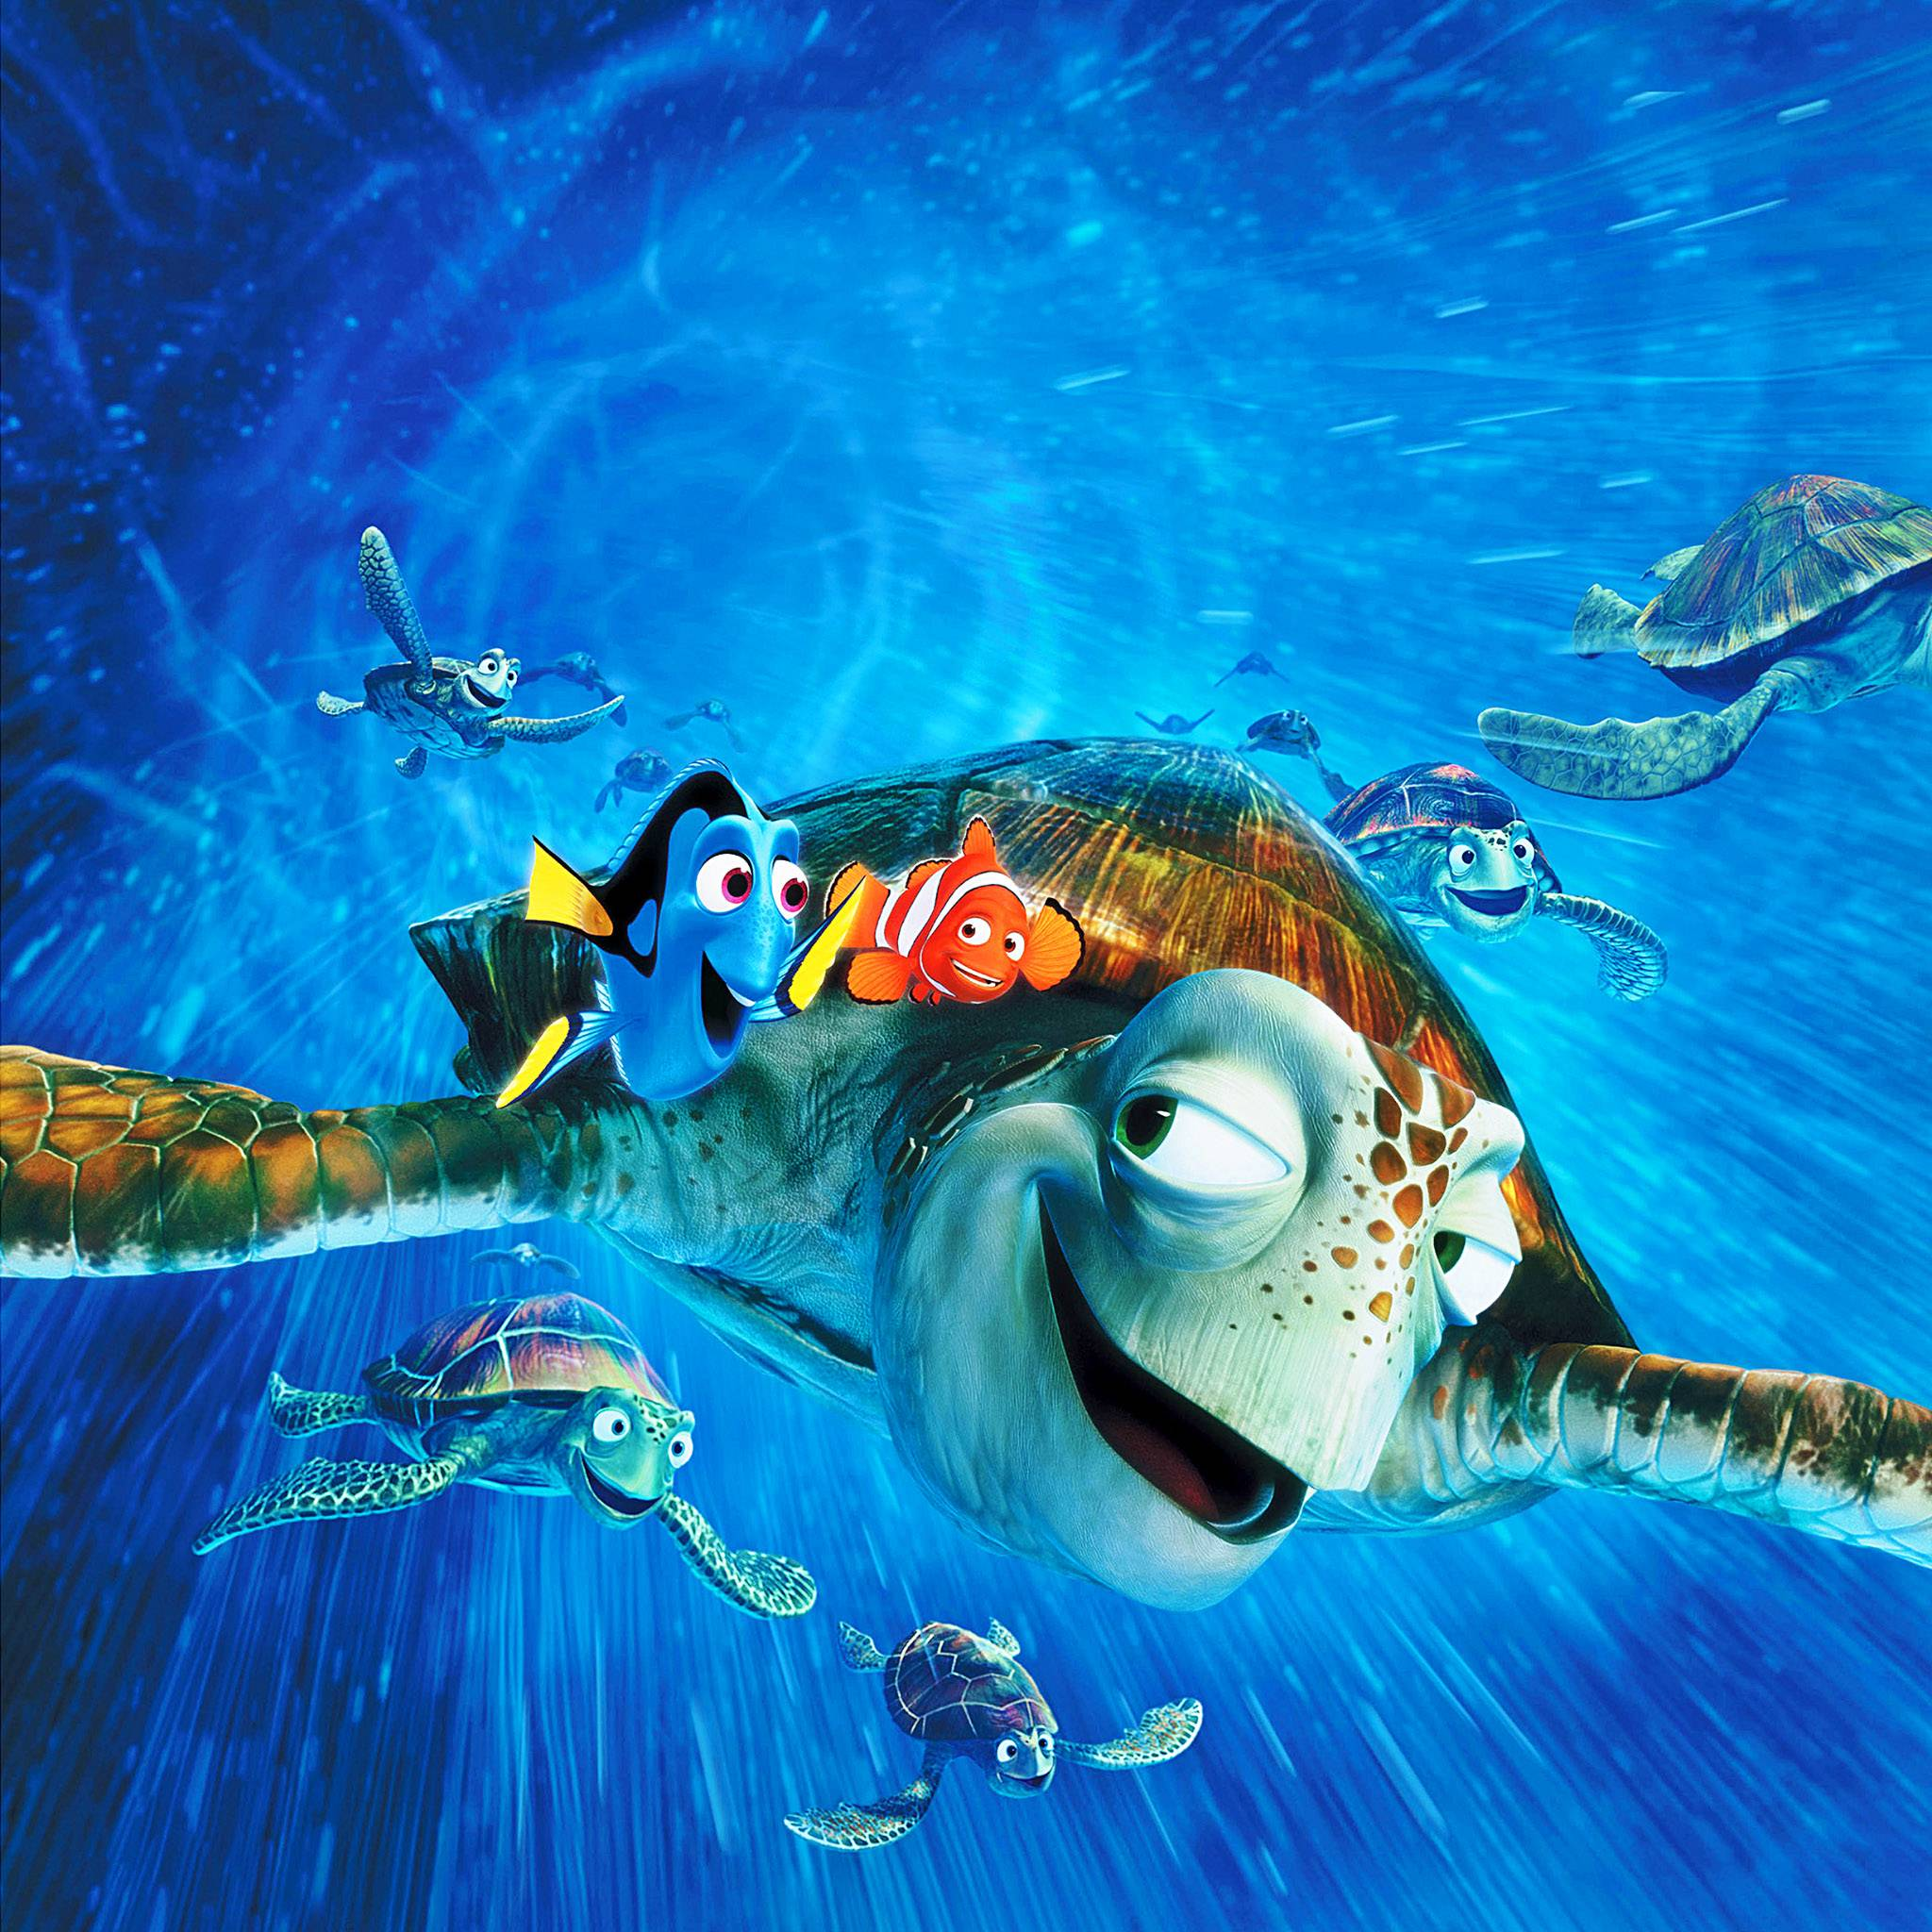 finding nemo hd wallpapers - photo #3